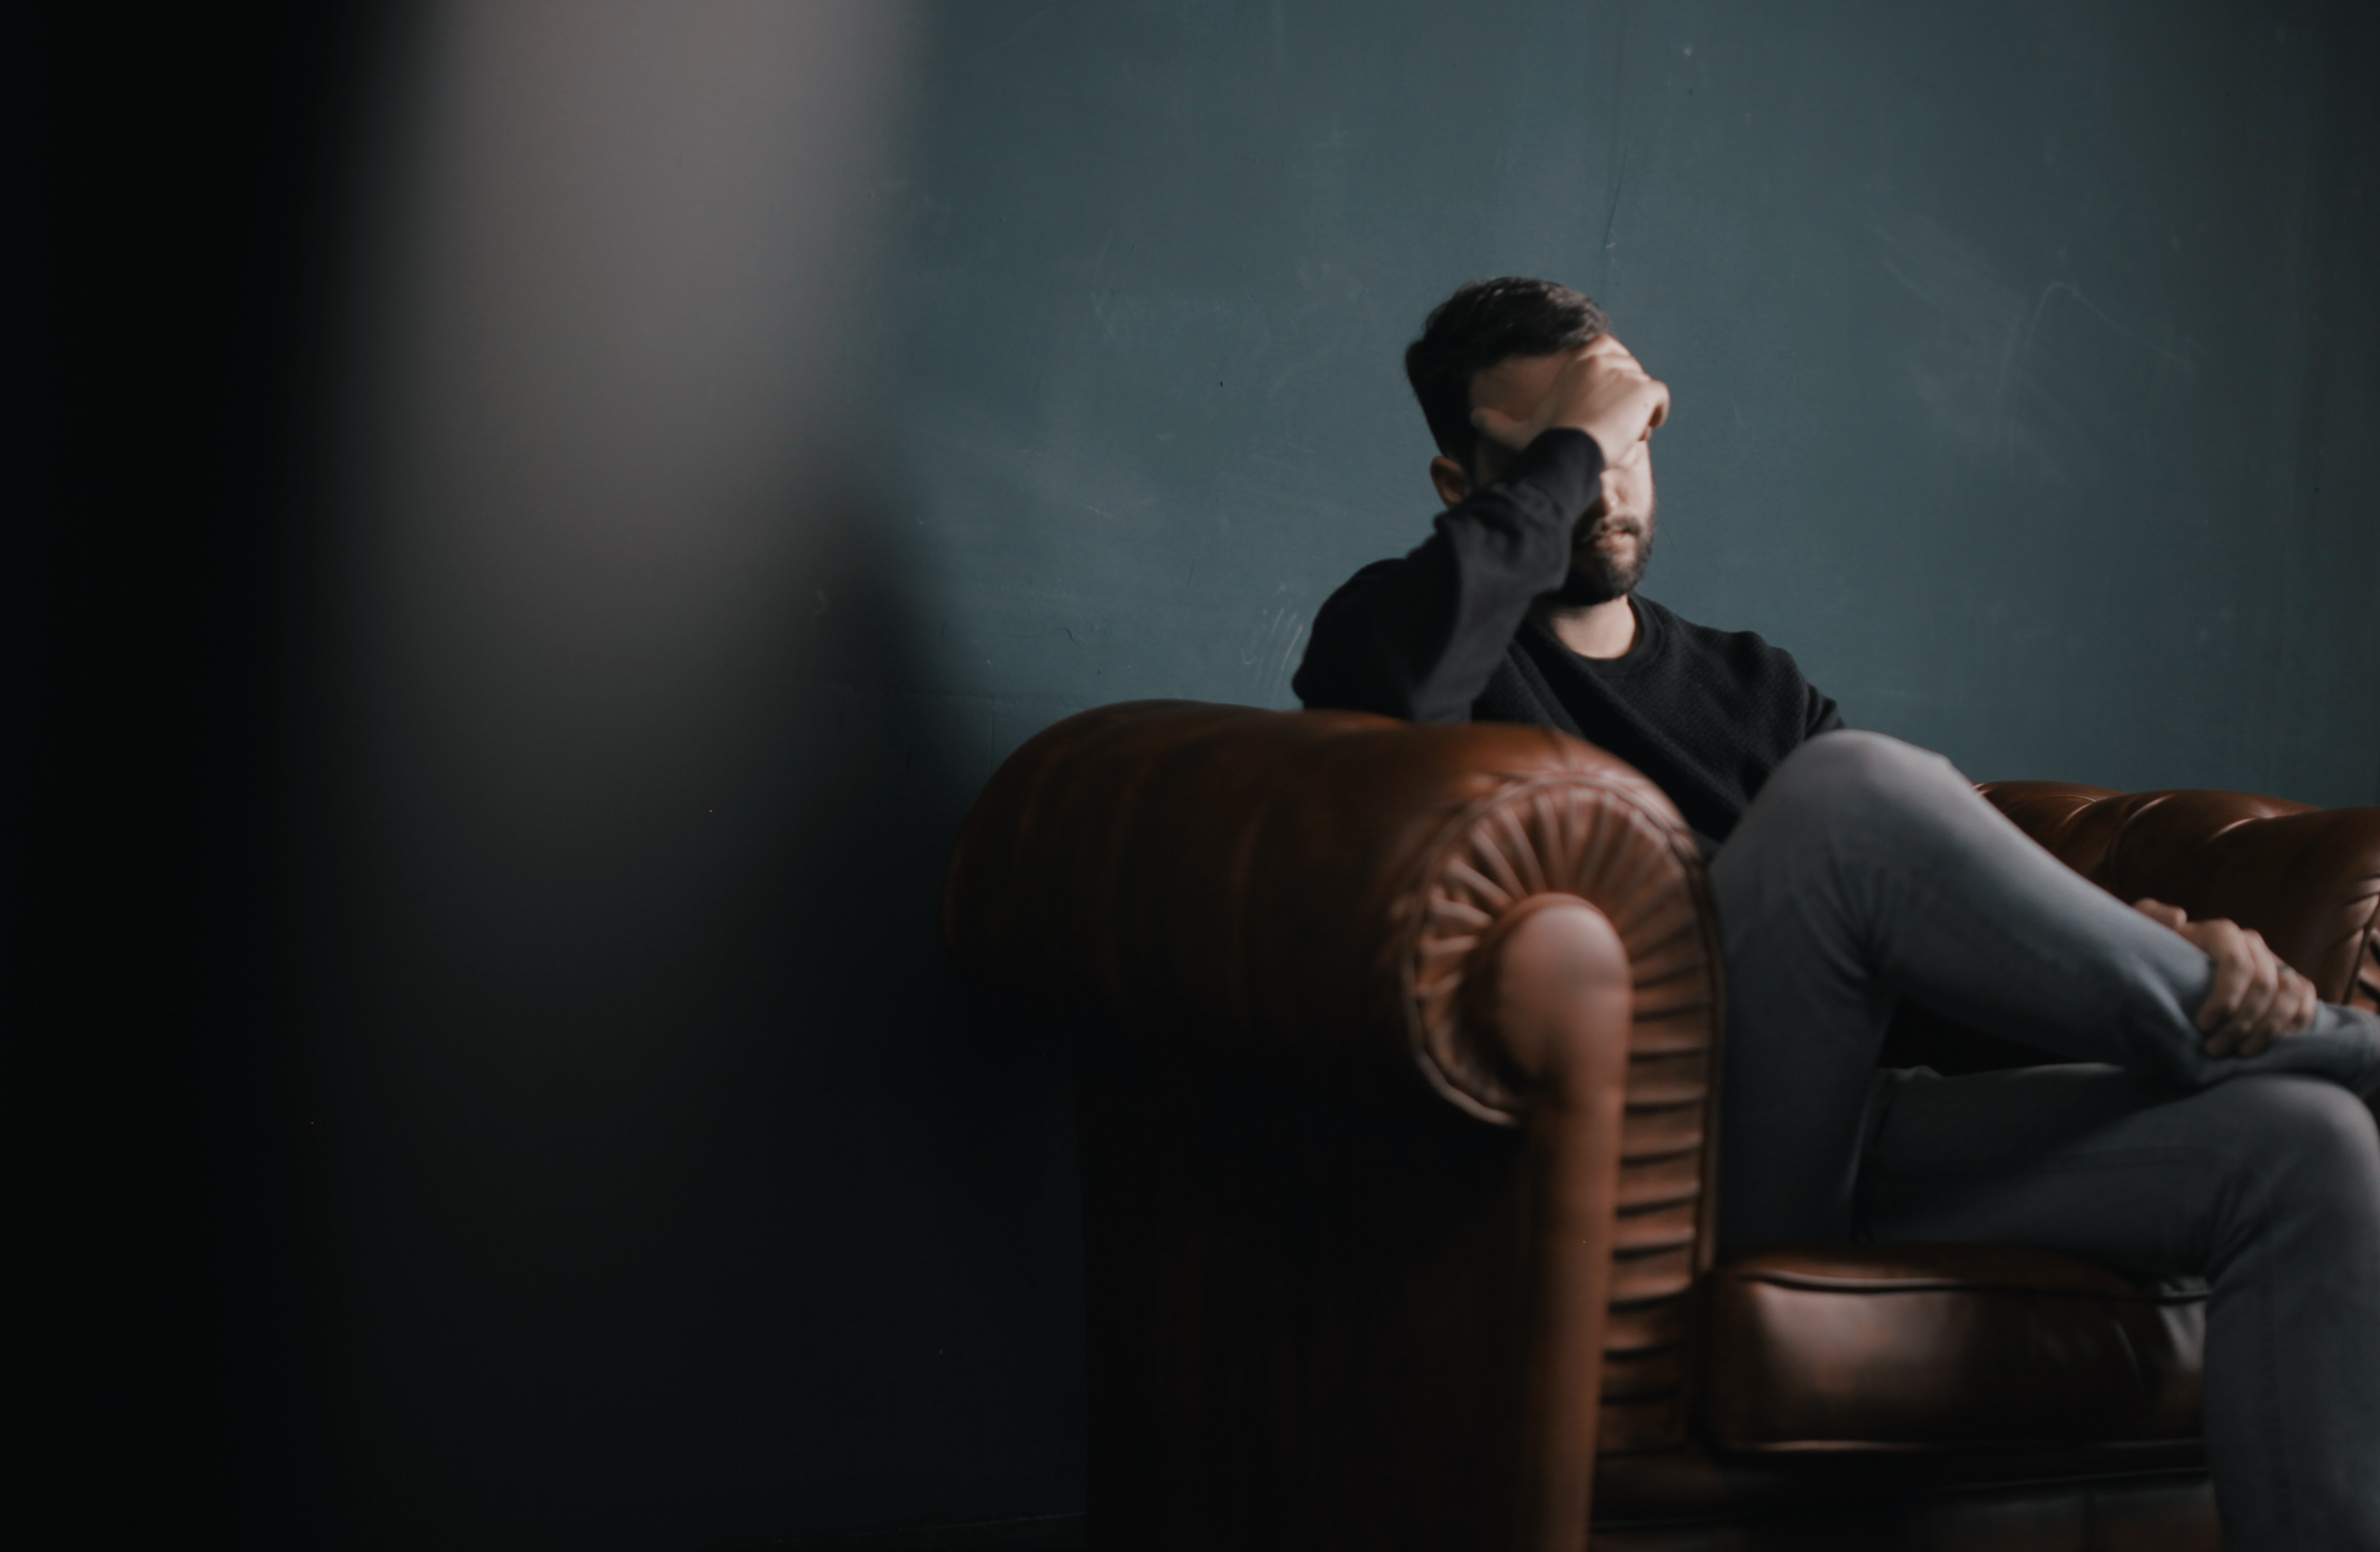 Men's Mental Health: Are Men Supposed to Feel too?